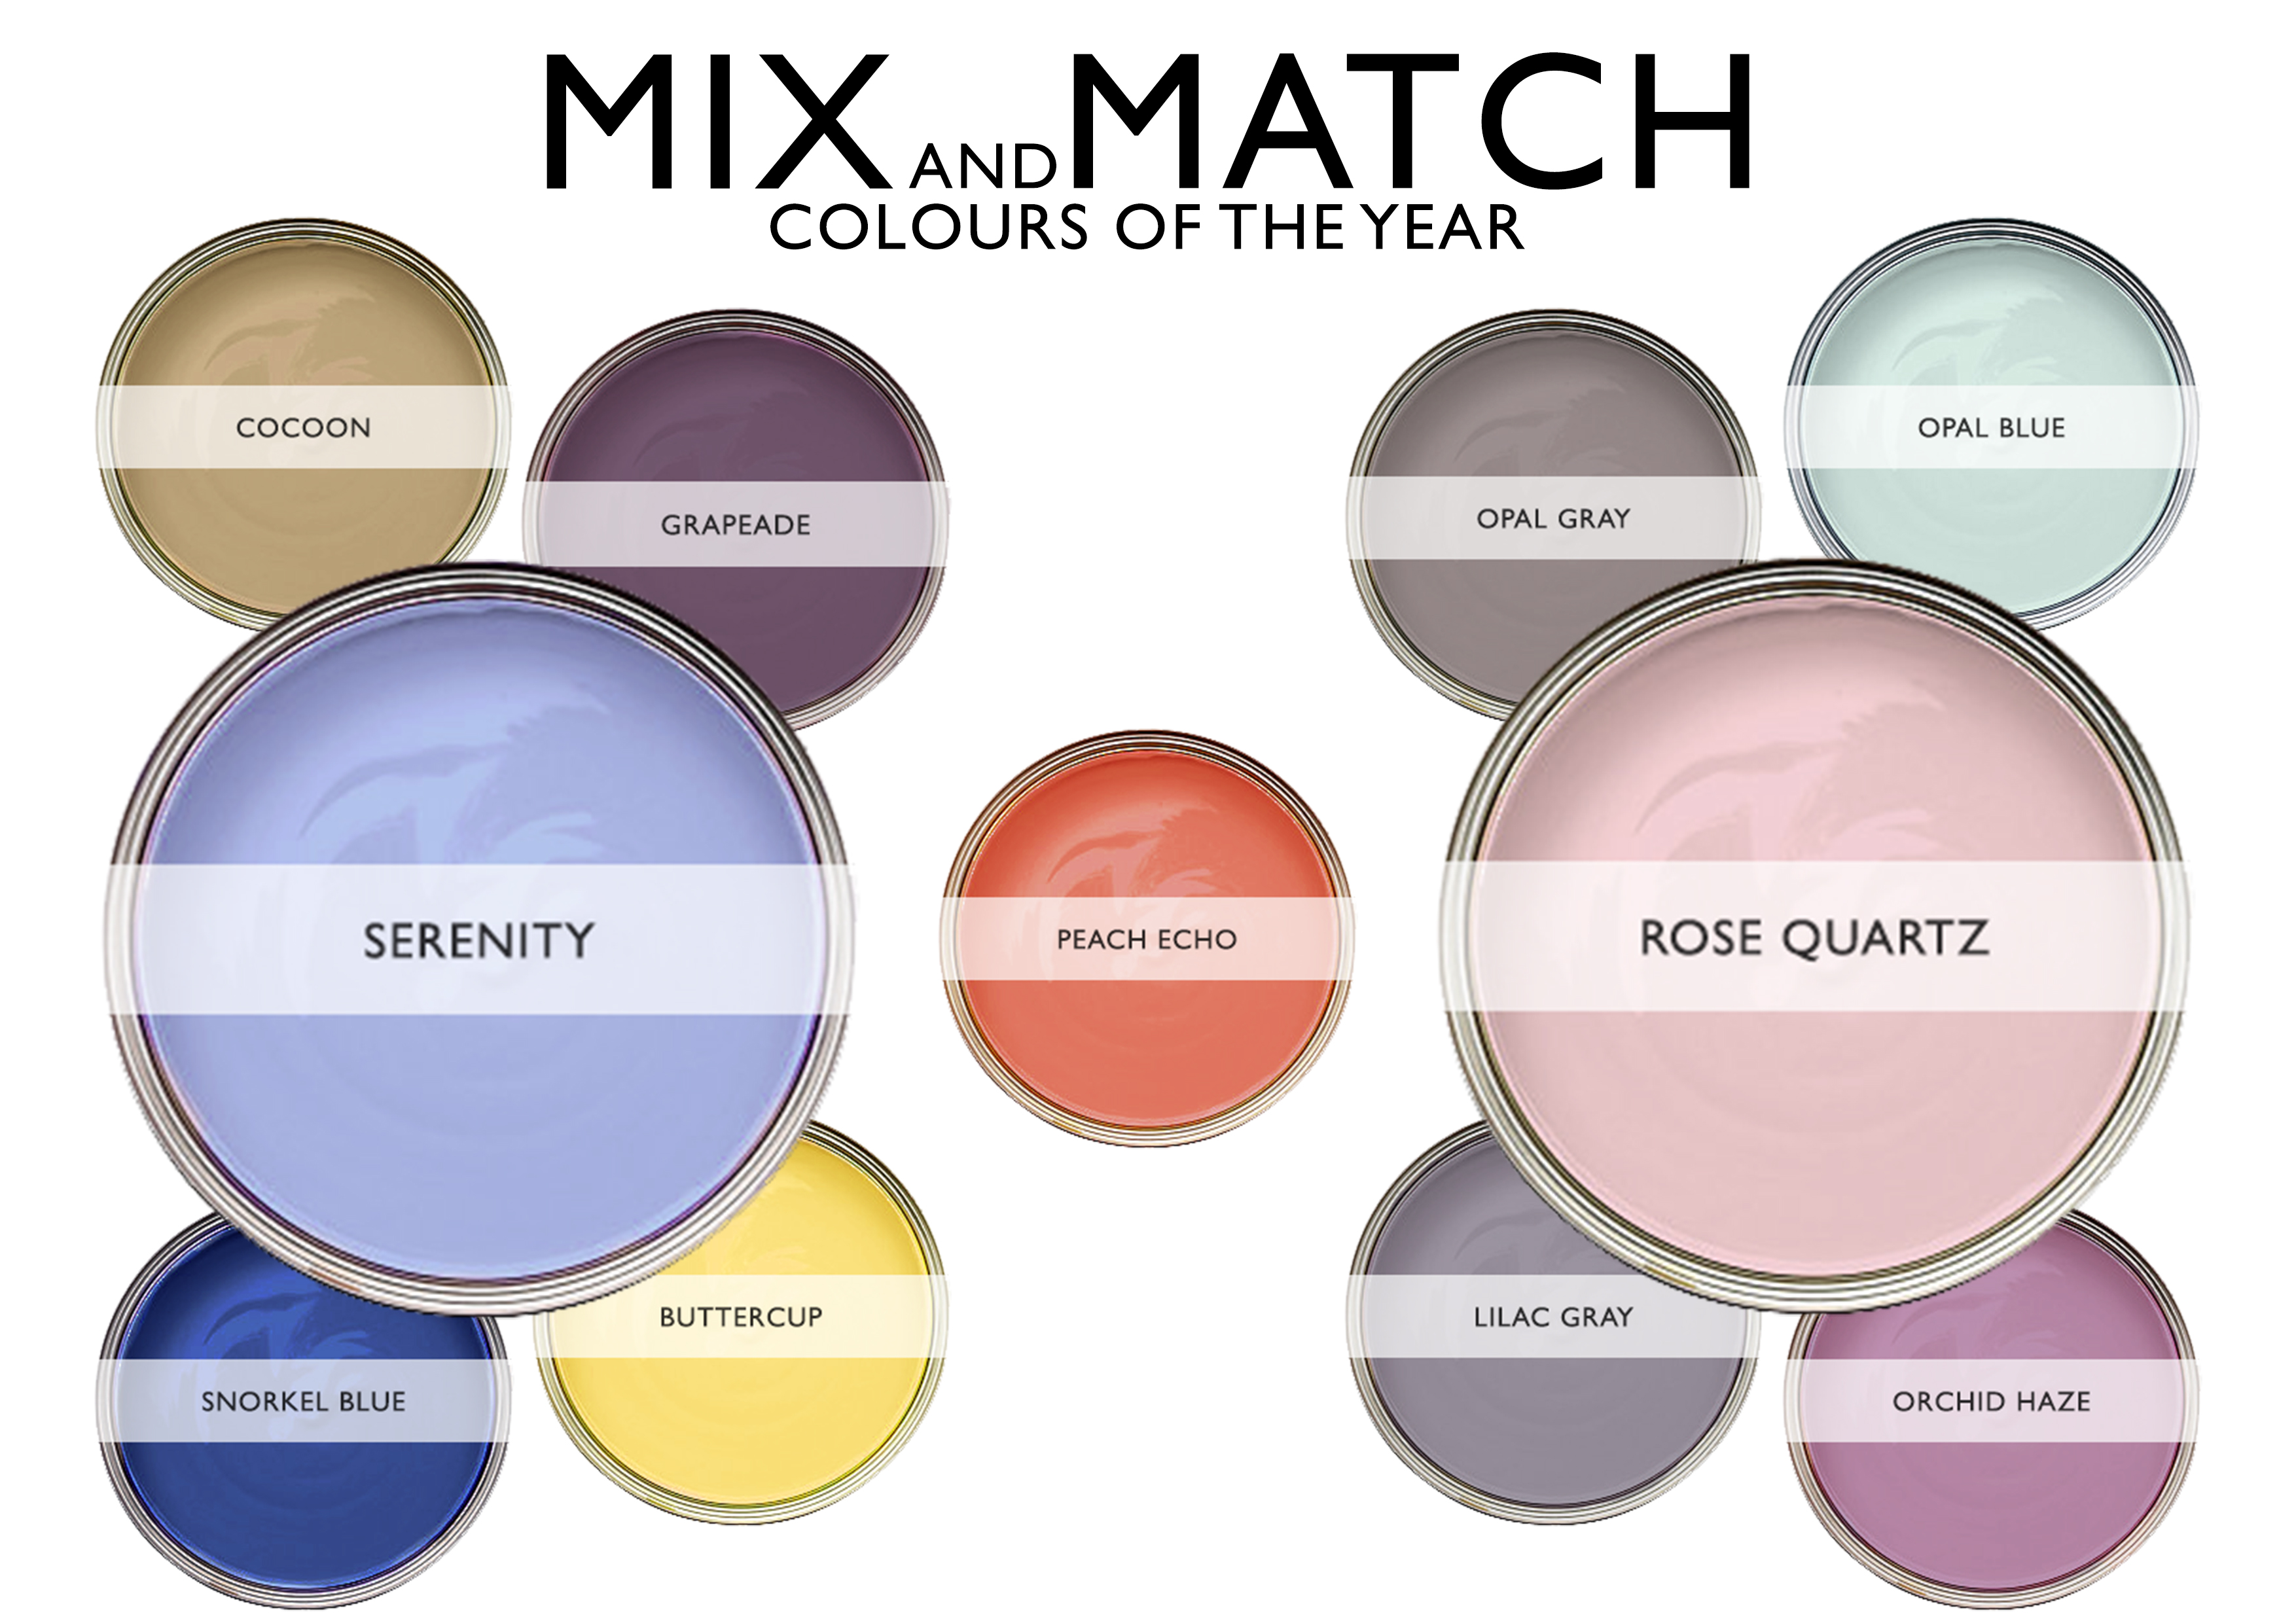 Mix And Match Pantone Colours Of The Year Roman Blinds Blog